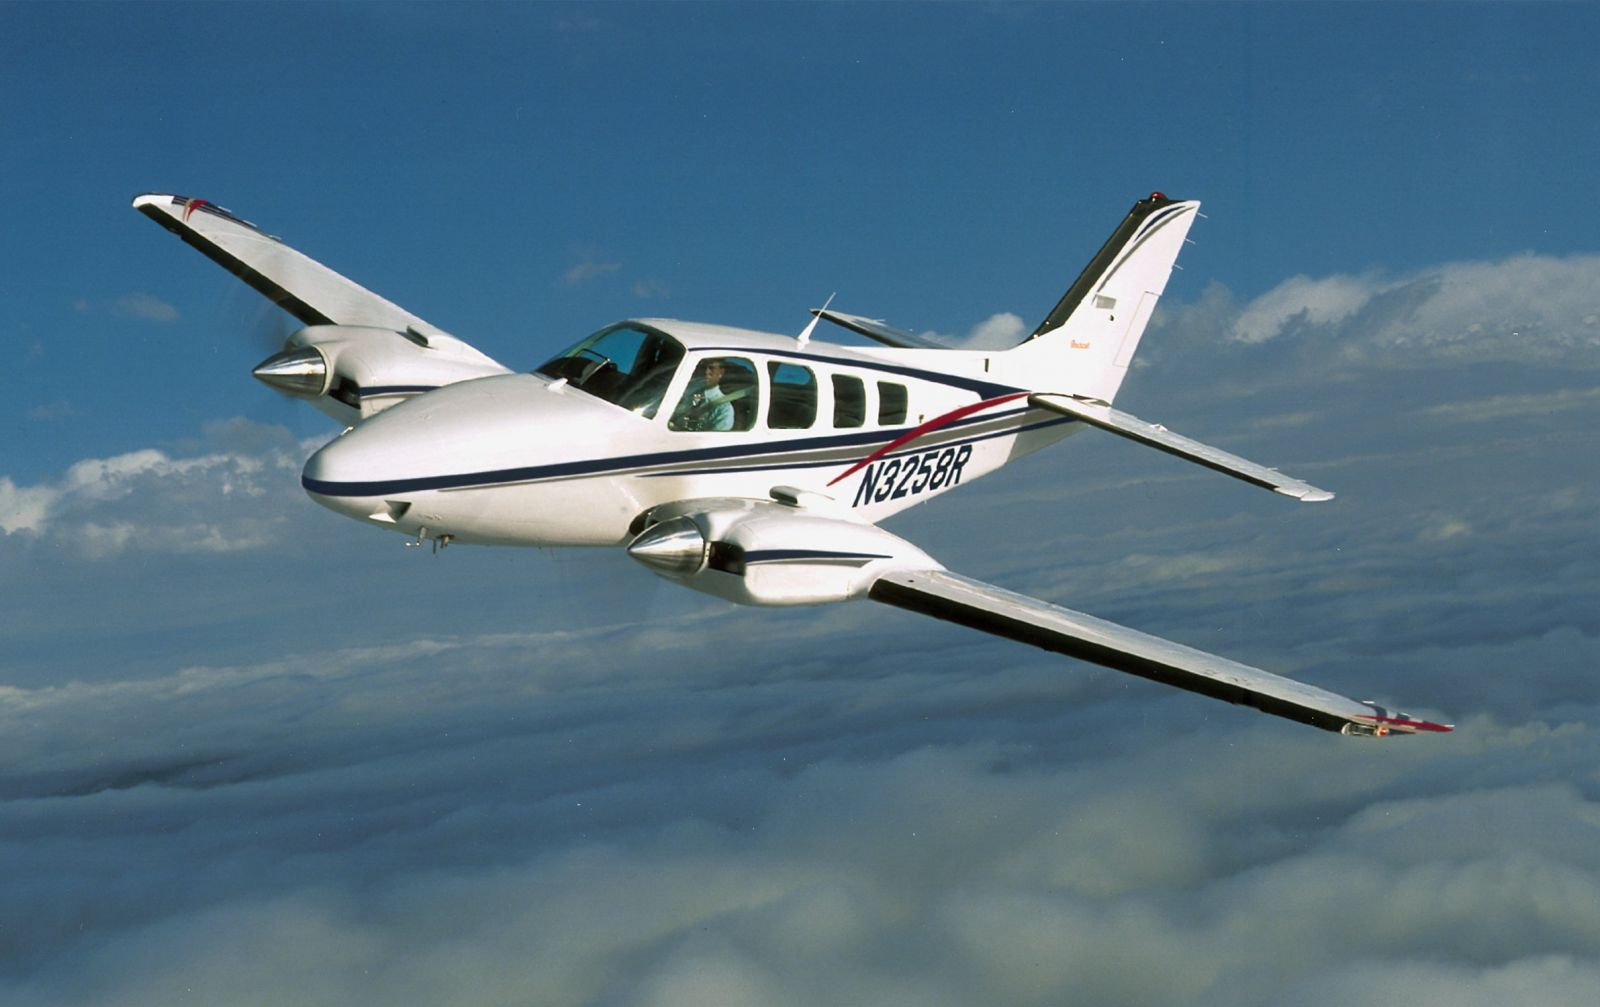 Mykonos Concierge Private Jets & Helicopters Rentals - Beech Baron 58 4 Pax, 2 Pilots